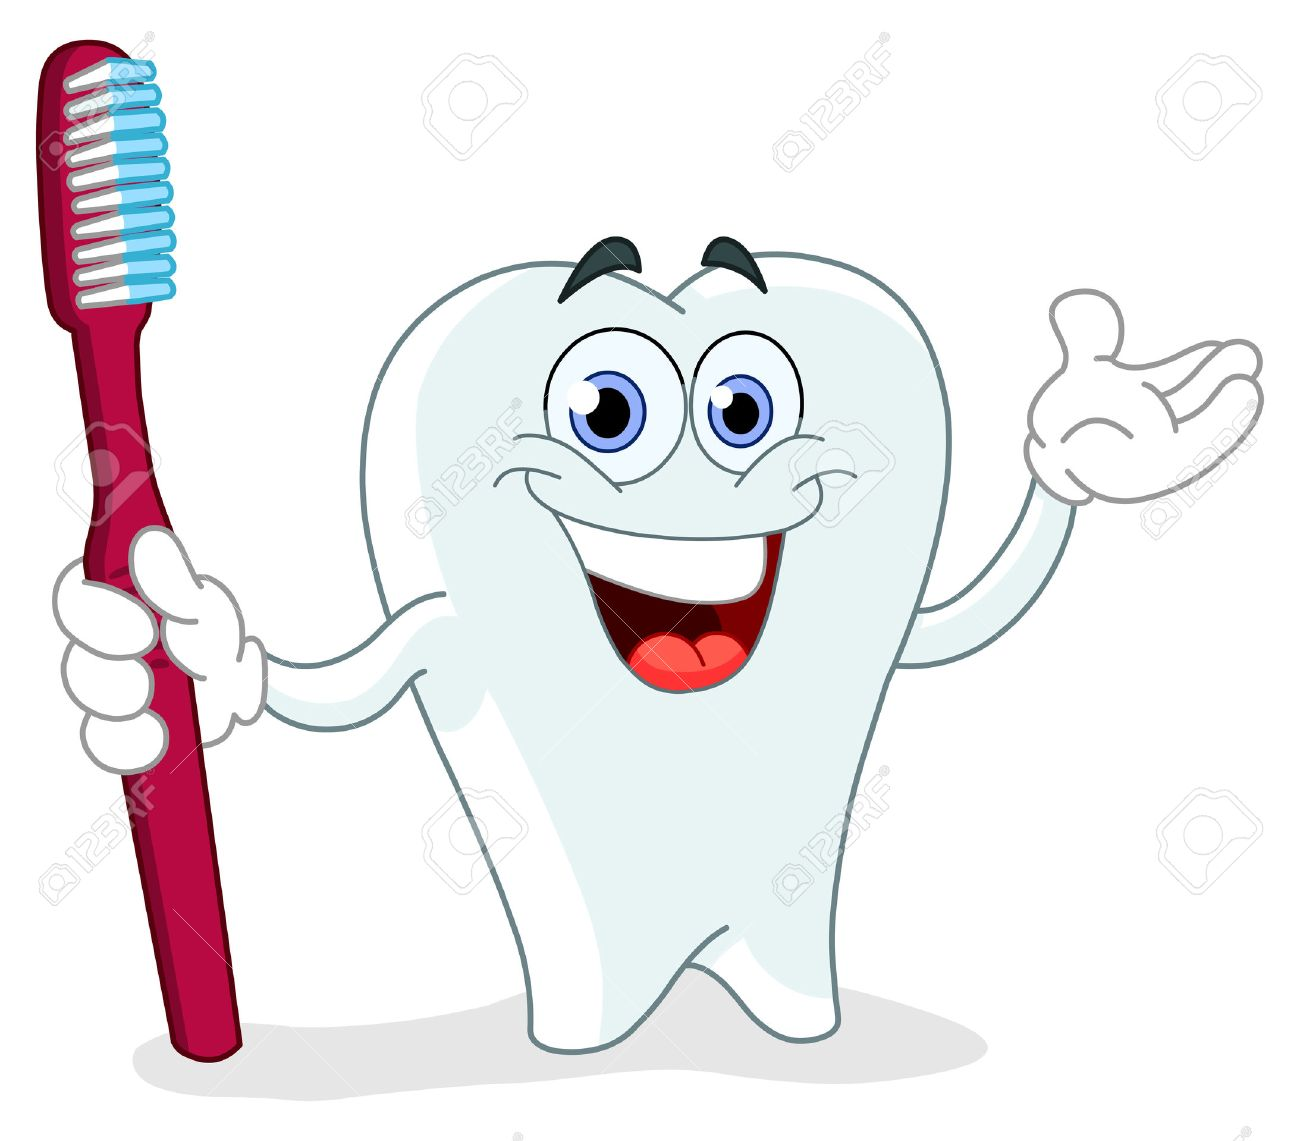 Cartoon tooth holding a toothbrush Stock Vector - 8894921